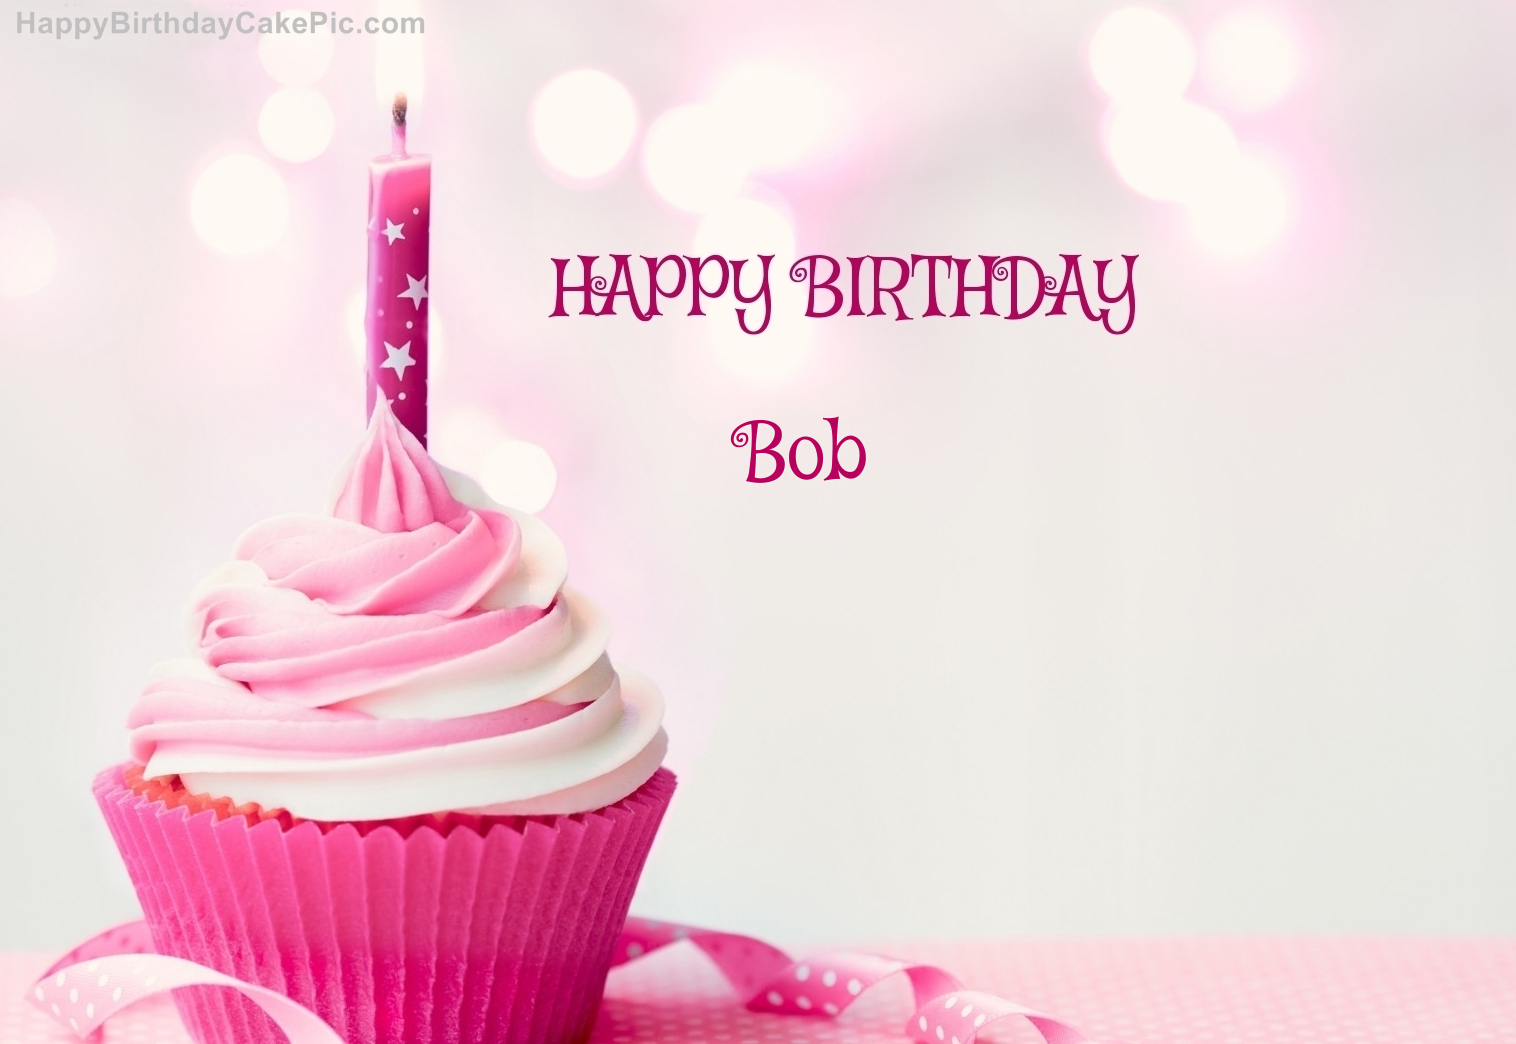 Happy Birthday Cupcake Candle Pink Cake For Bob - Happy birthday bob cake